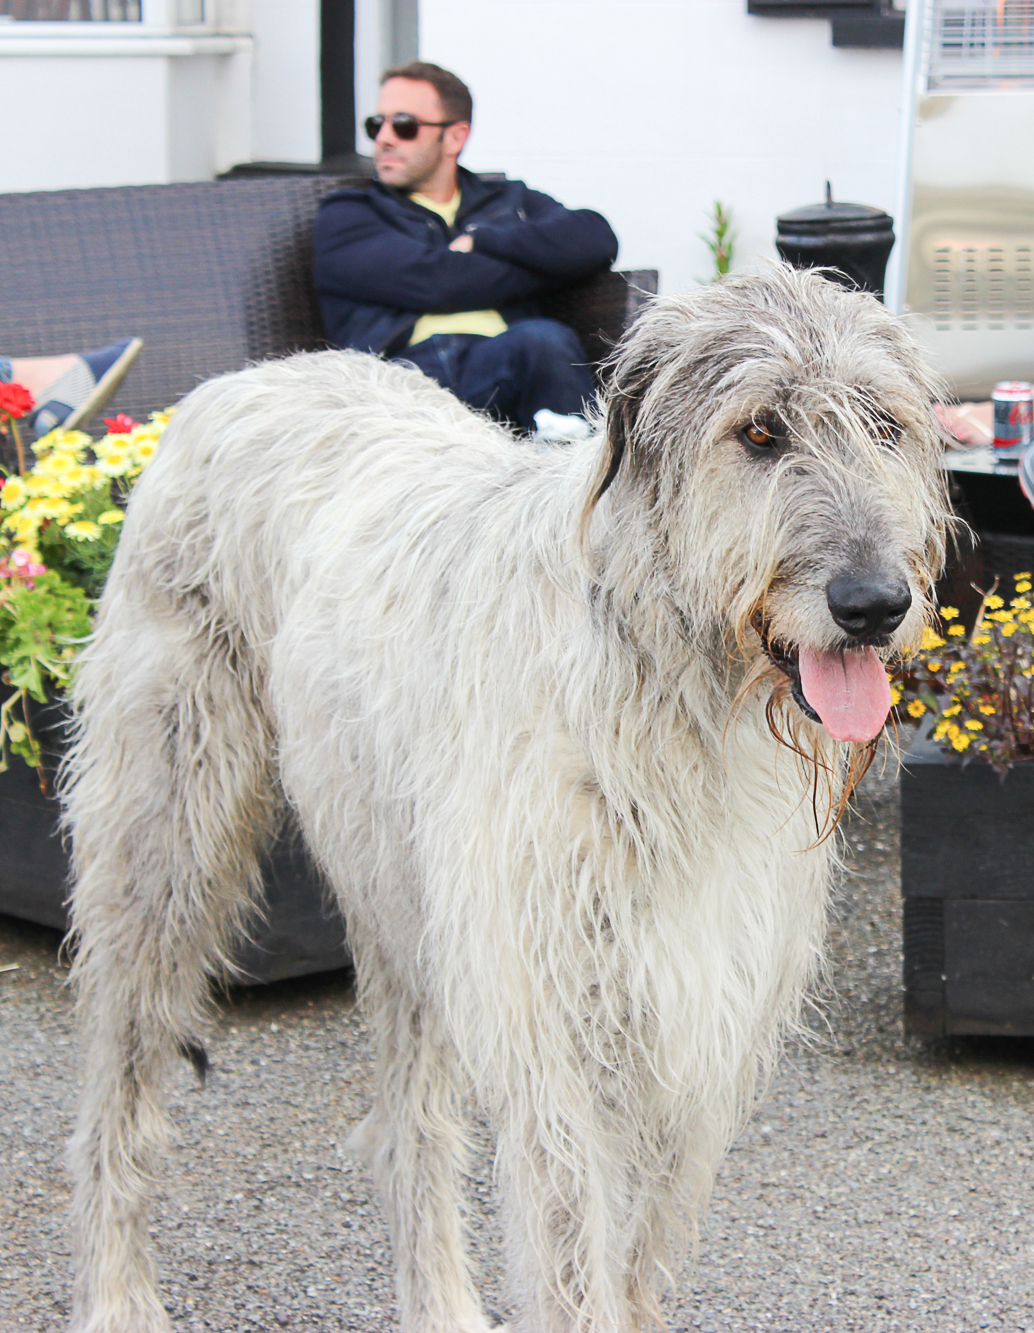 Seamus the Wolfhound, mascot of Essential Ireland Tours, in the garden at Milltown House